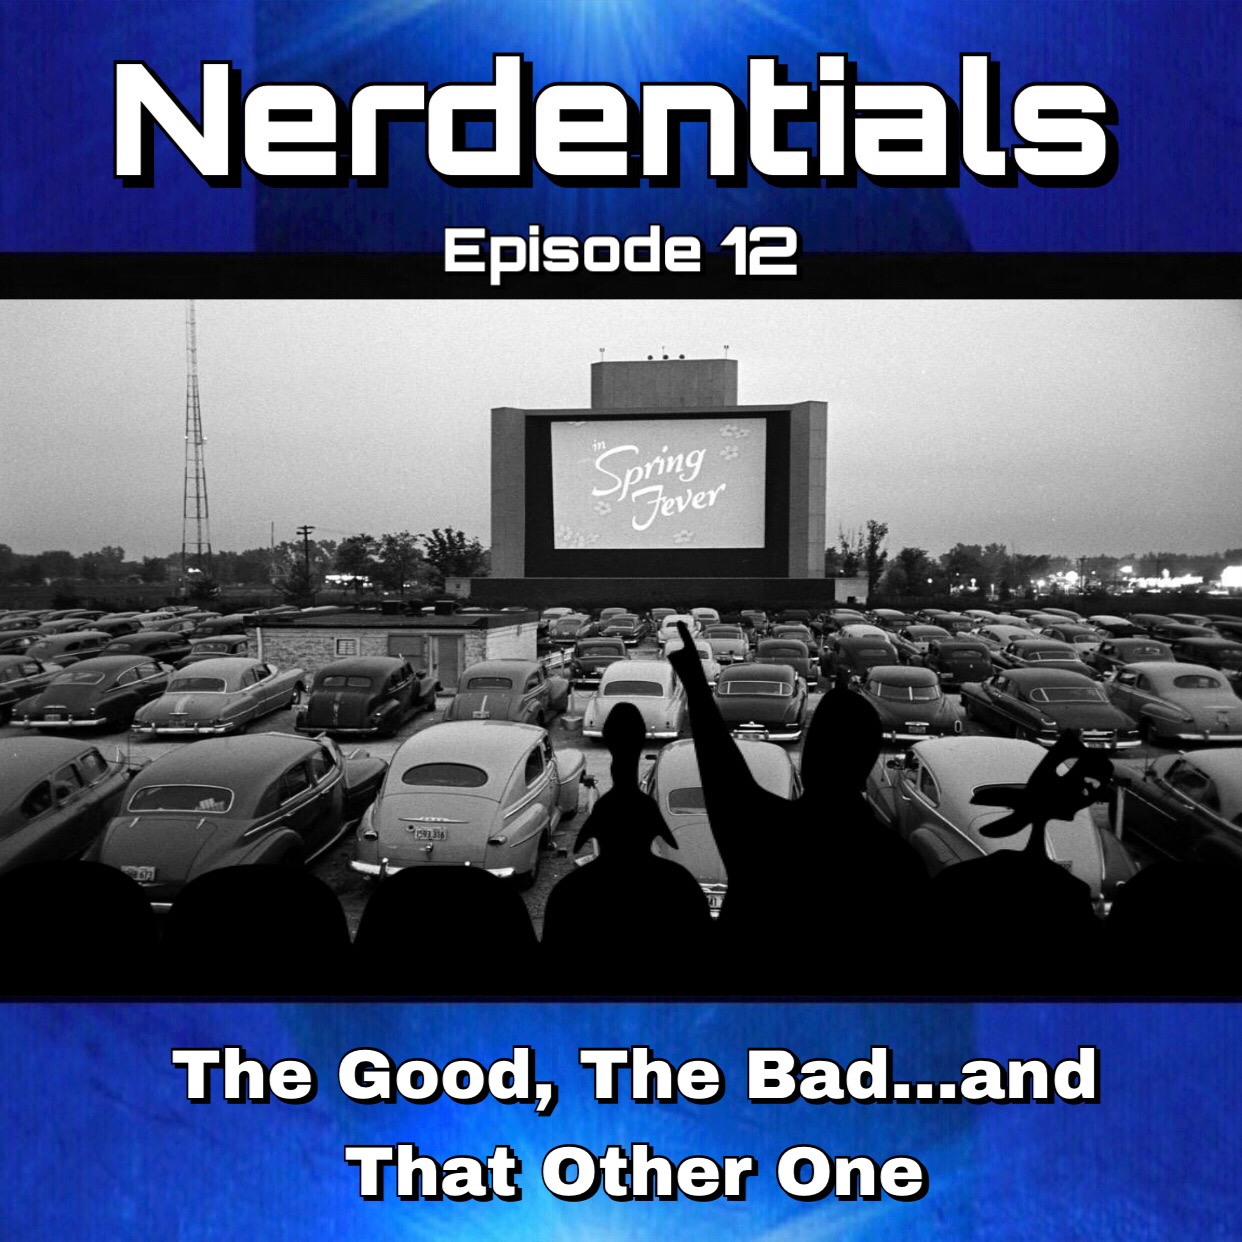 - Welcome to Nerdentials! Your weekly dose of the nerdy essentials. Covering Film, TV, Video Games and Comics. This week we hit up our mid-year top picks for Best and Worst Films of the year so far! 4 good...4 bad...and um...yeah! Sit back and enjoy your commute today!